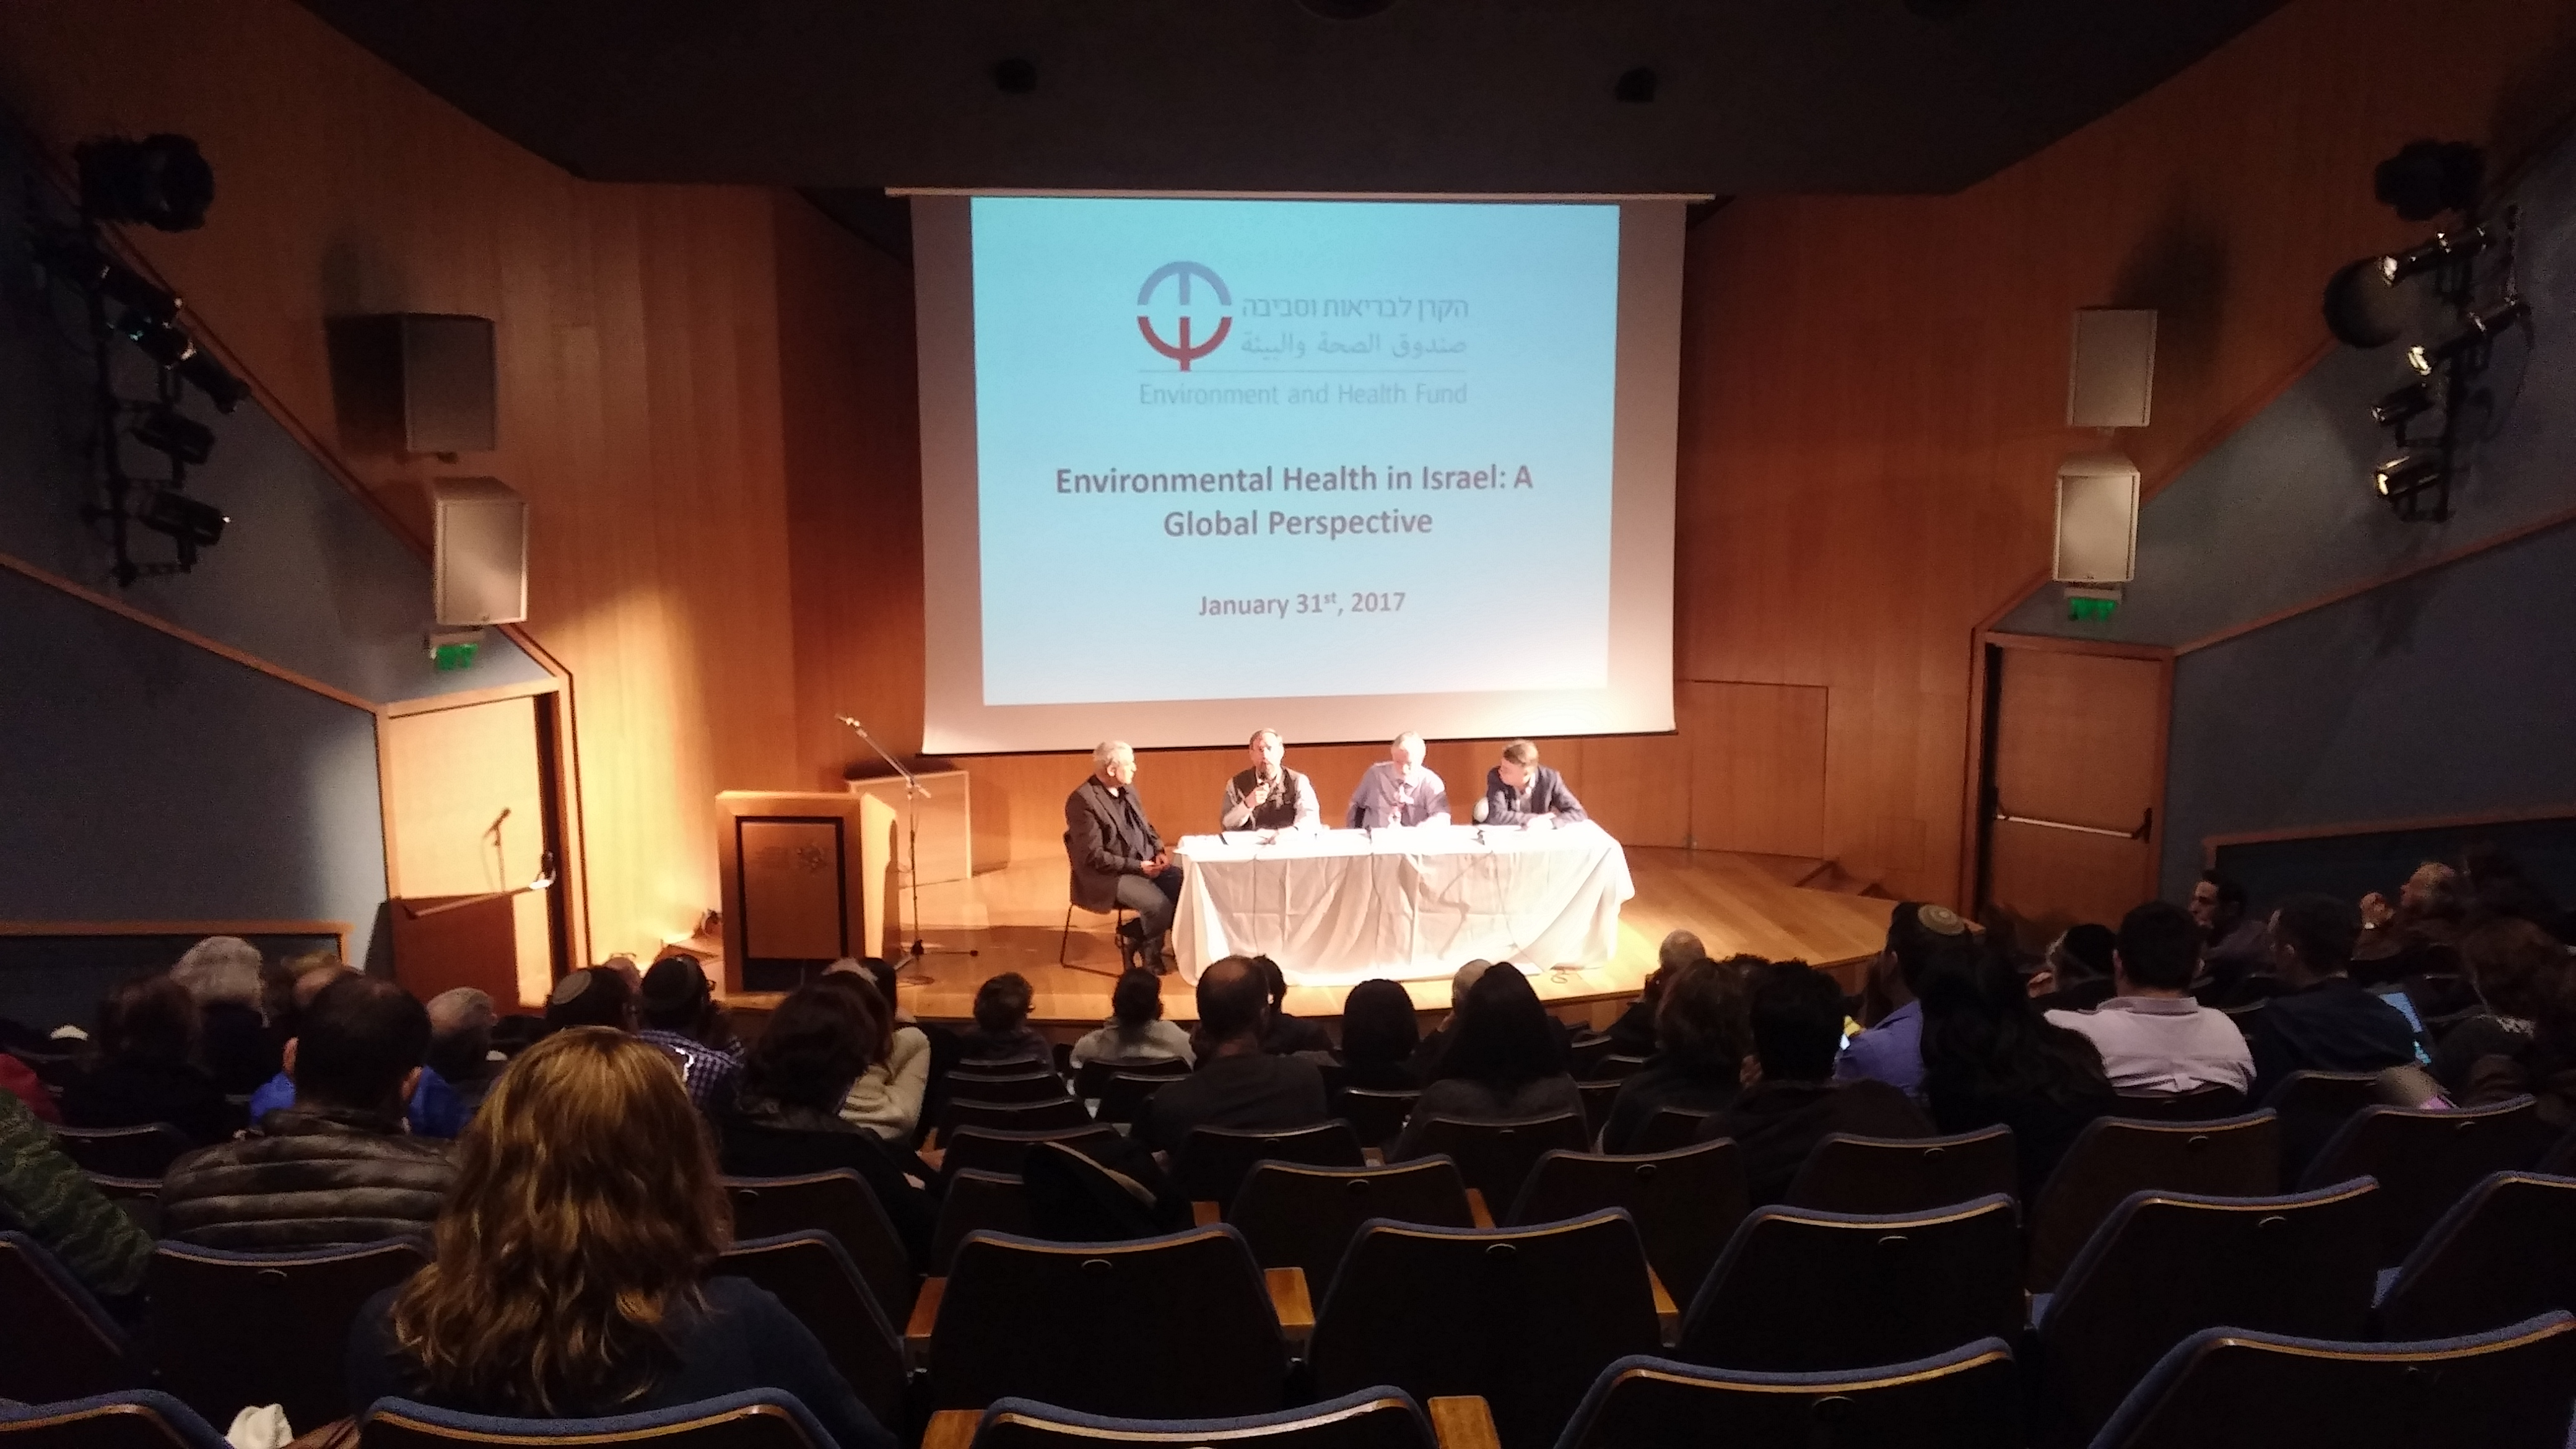 Image from Environmental health in Israel from a global perspective panel January 2017